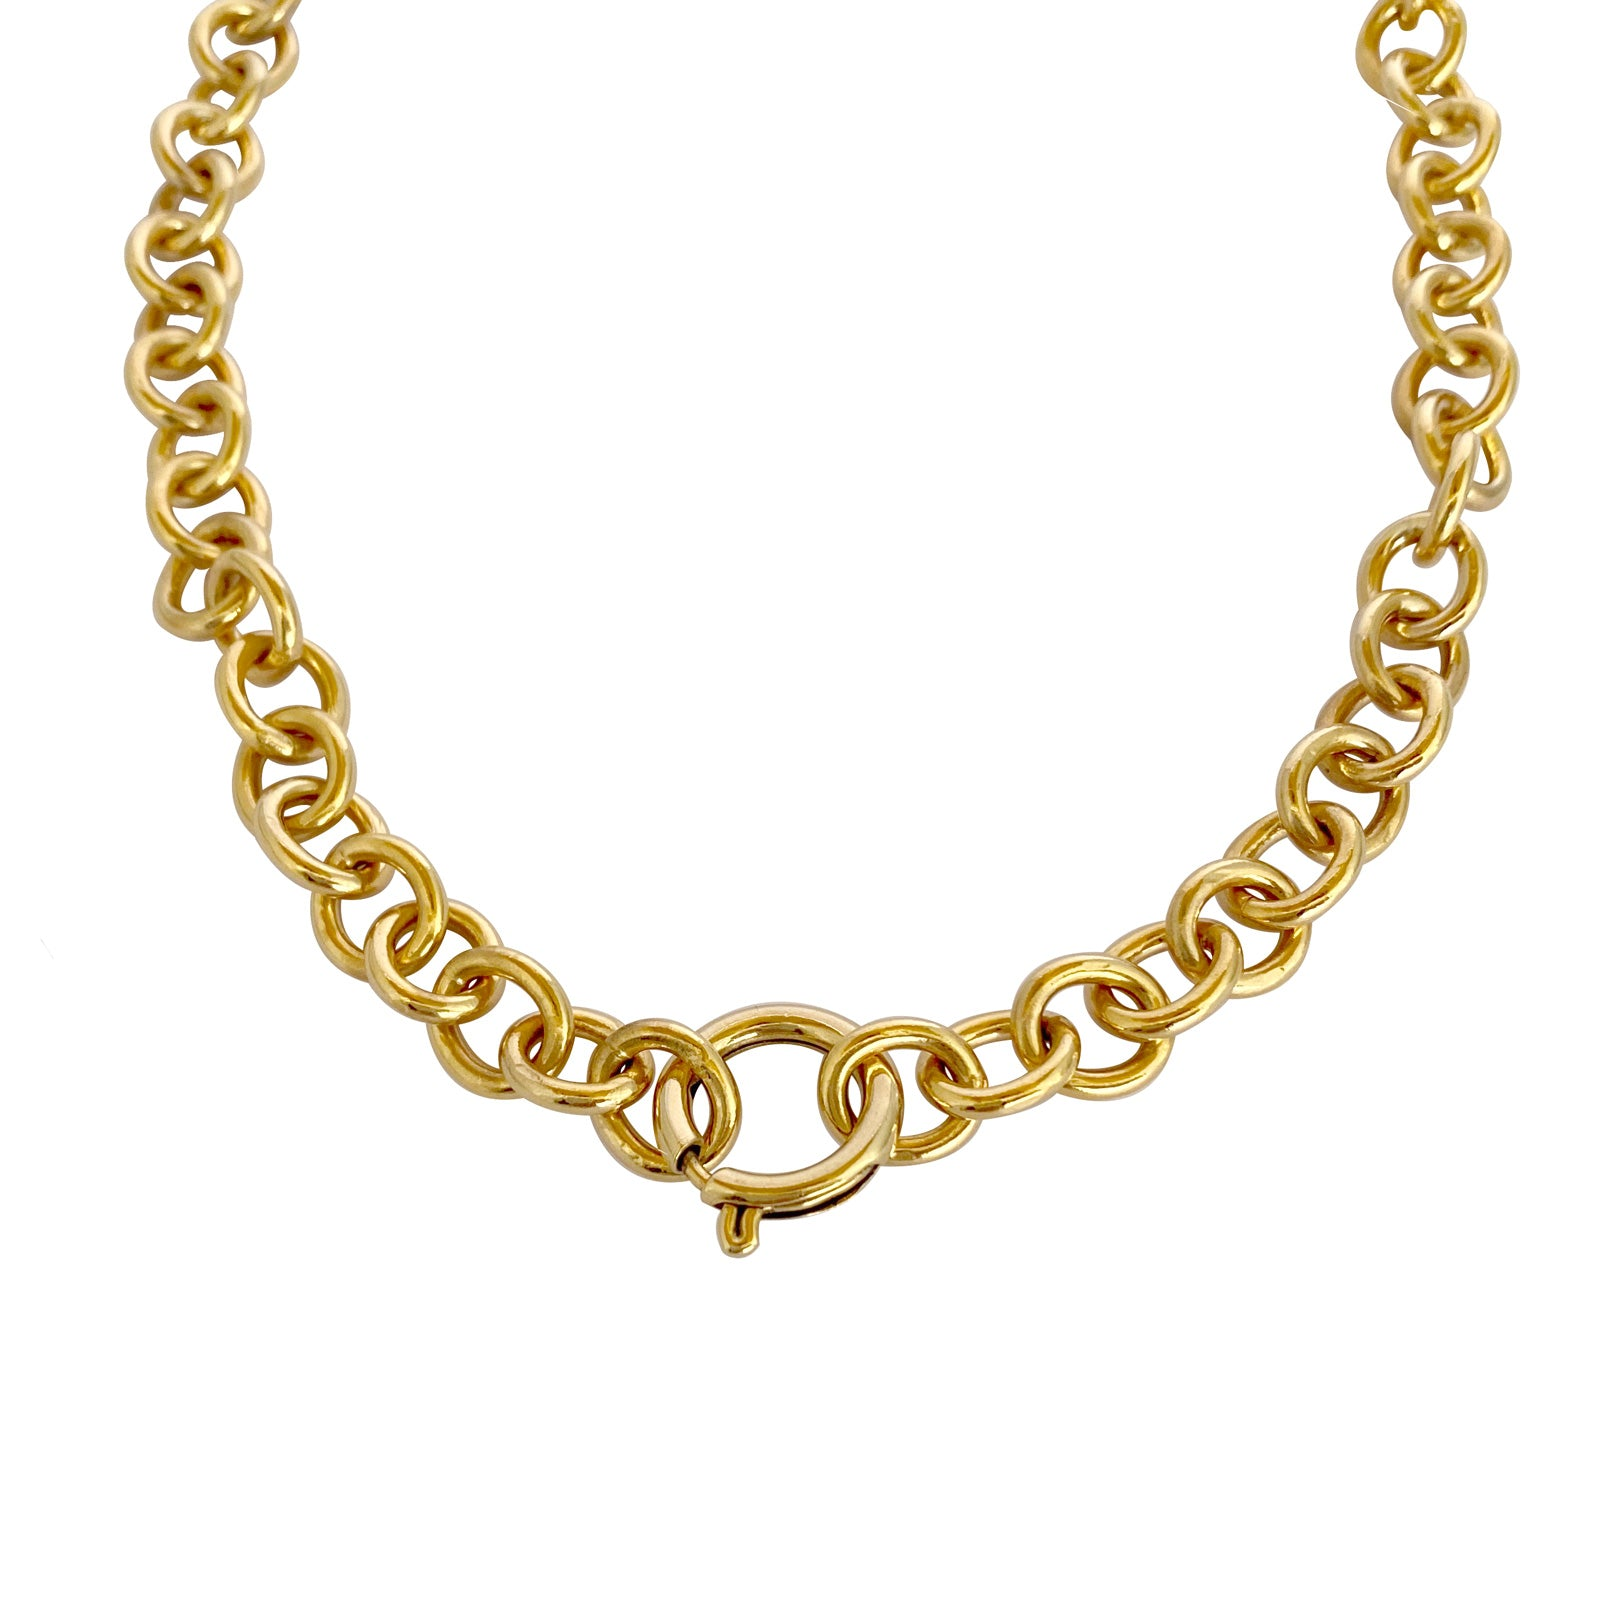 bold-chain-gold-with-open-clip-for-charms-colombian-designers